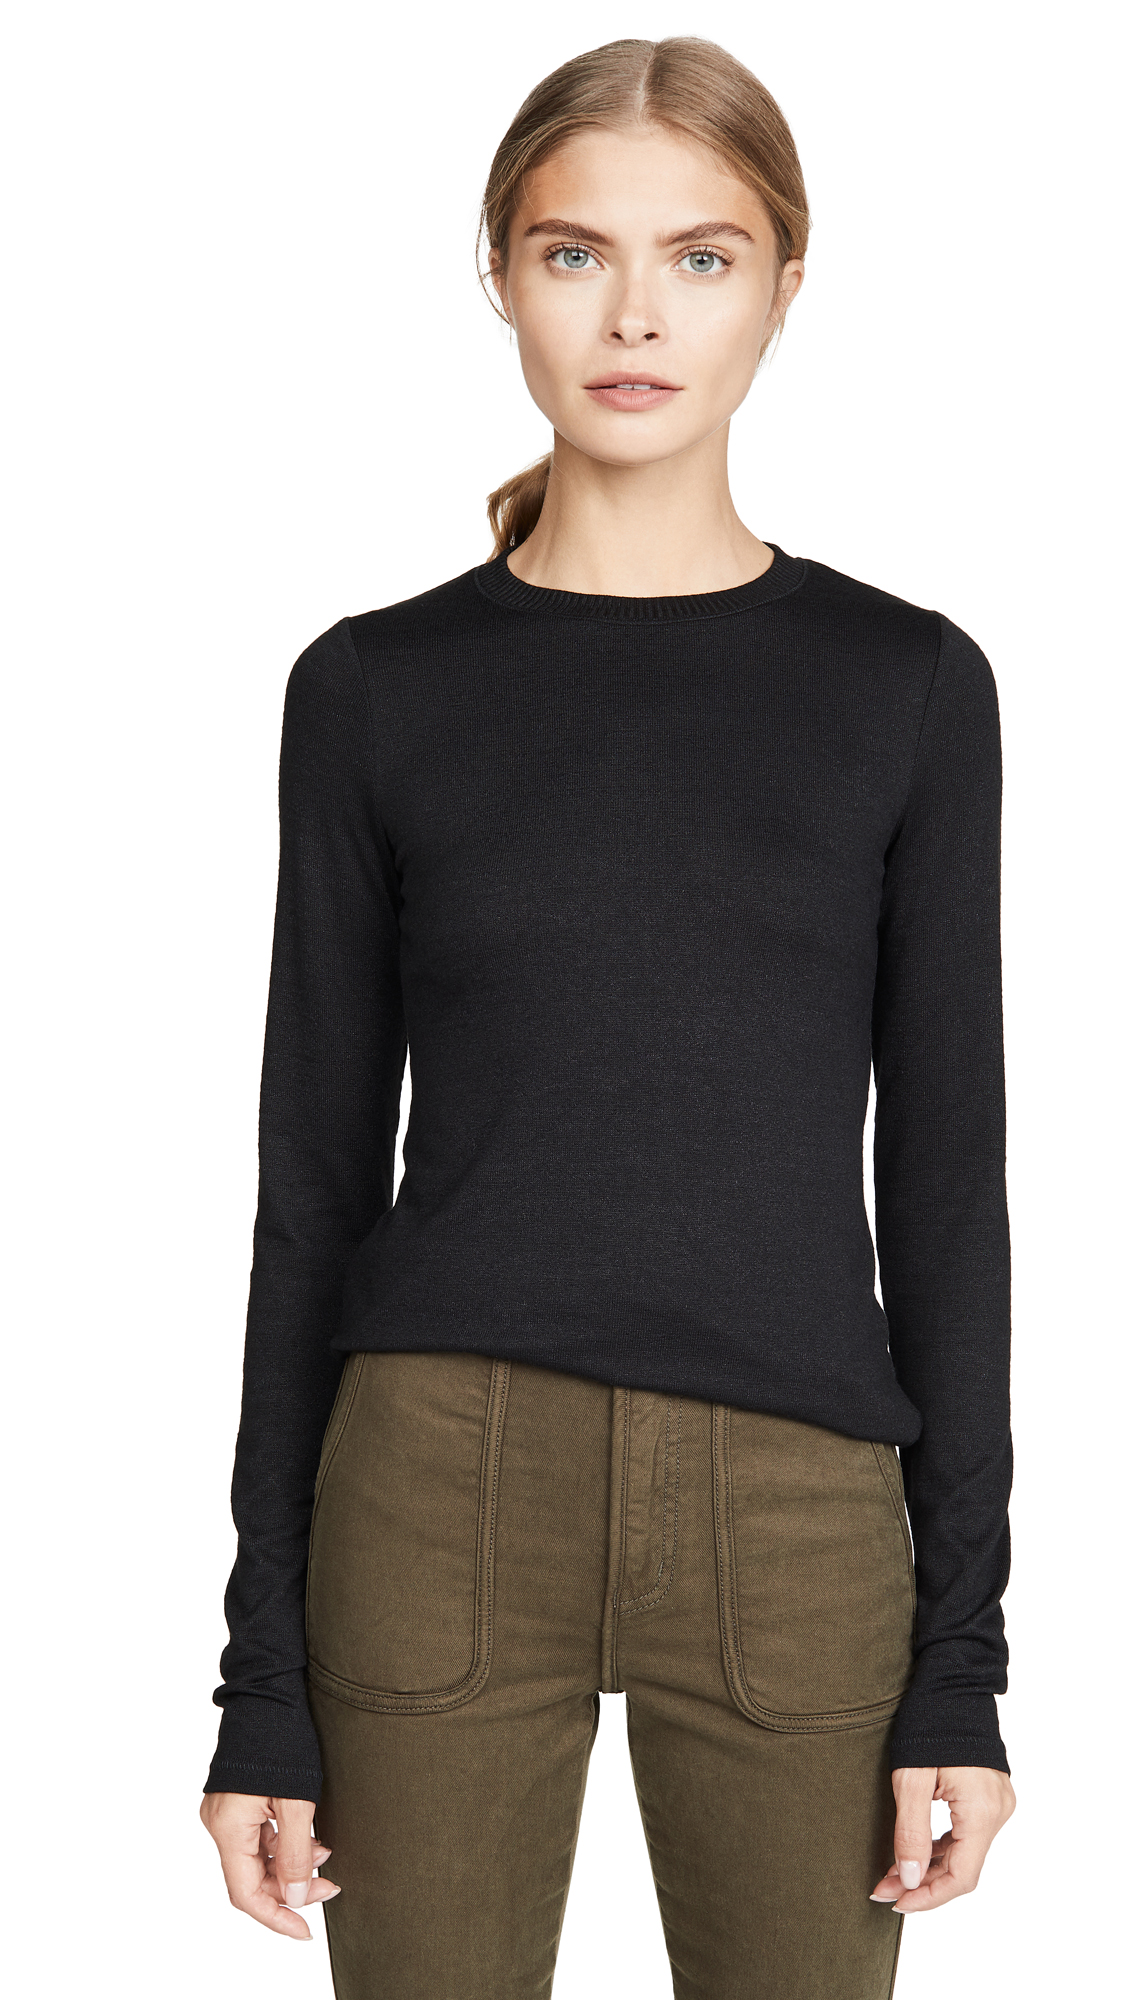 Buy Rag & Bone/JEAN online - photo of Rag & Bone/JEAN Jane Slim Long Sleeve